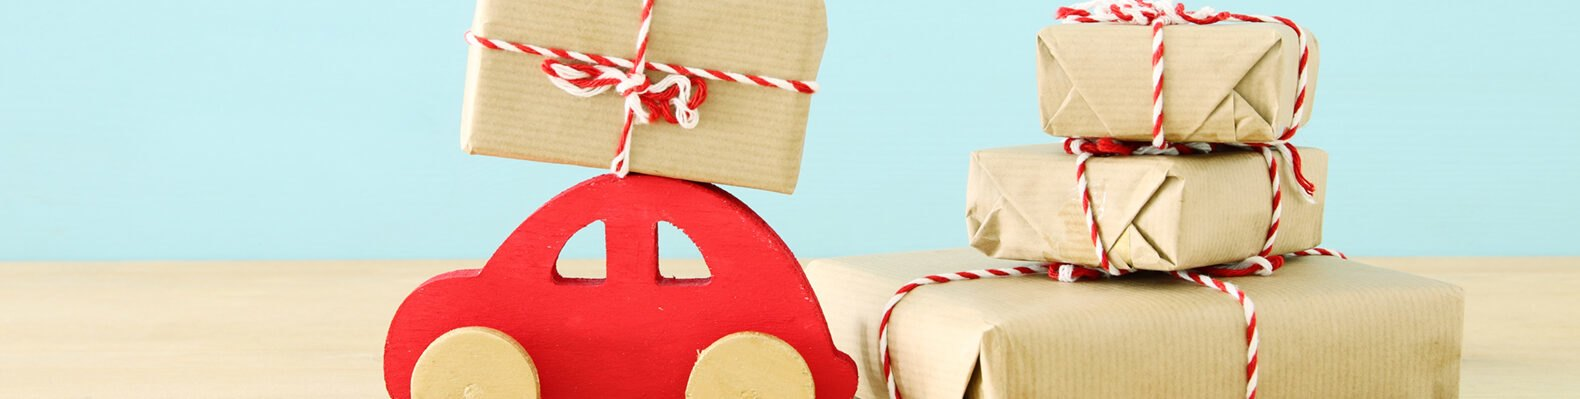 red wood car near butcher paper-wrapped gifts